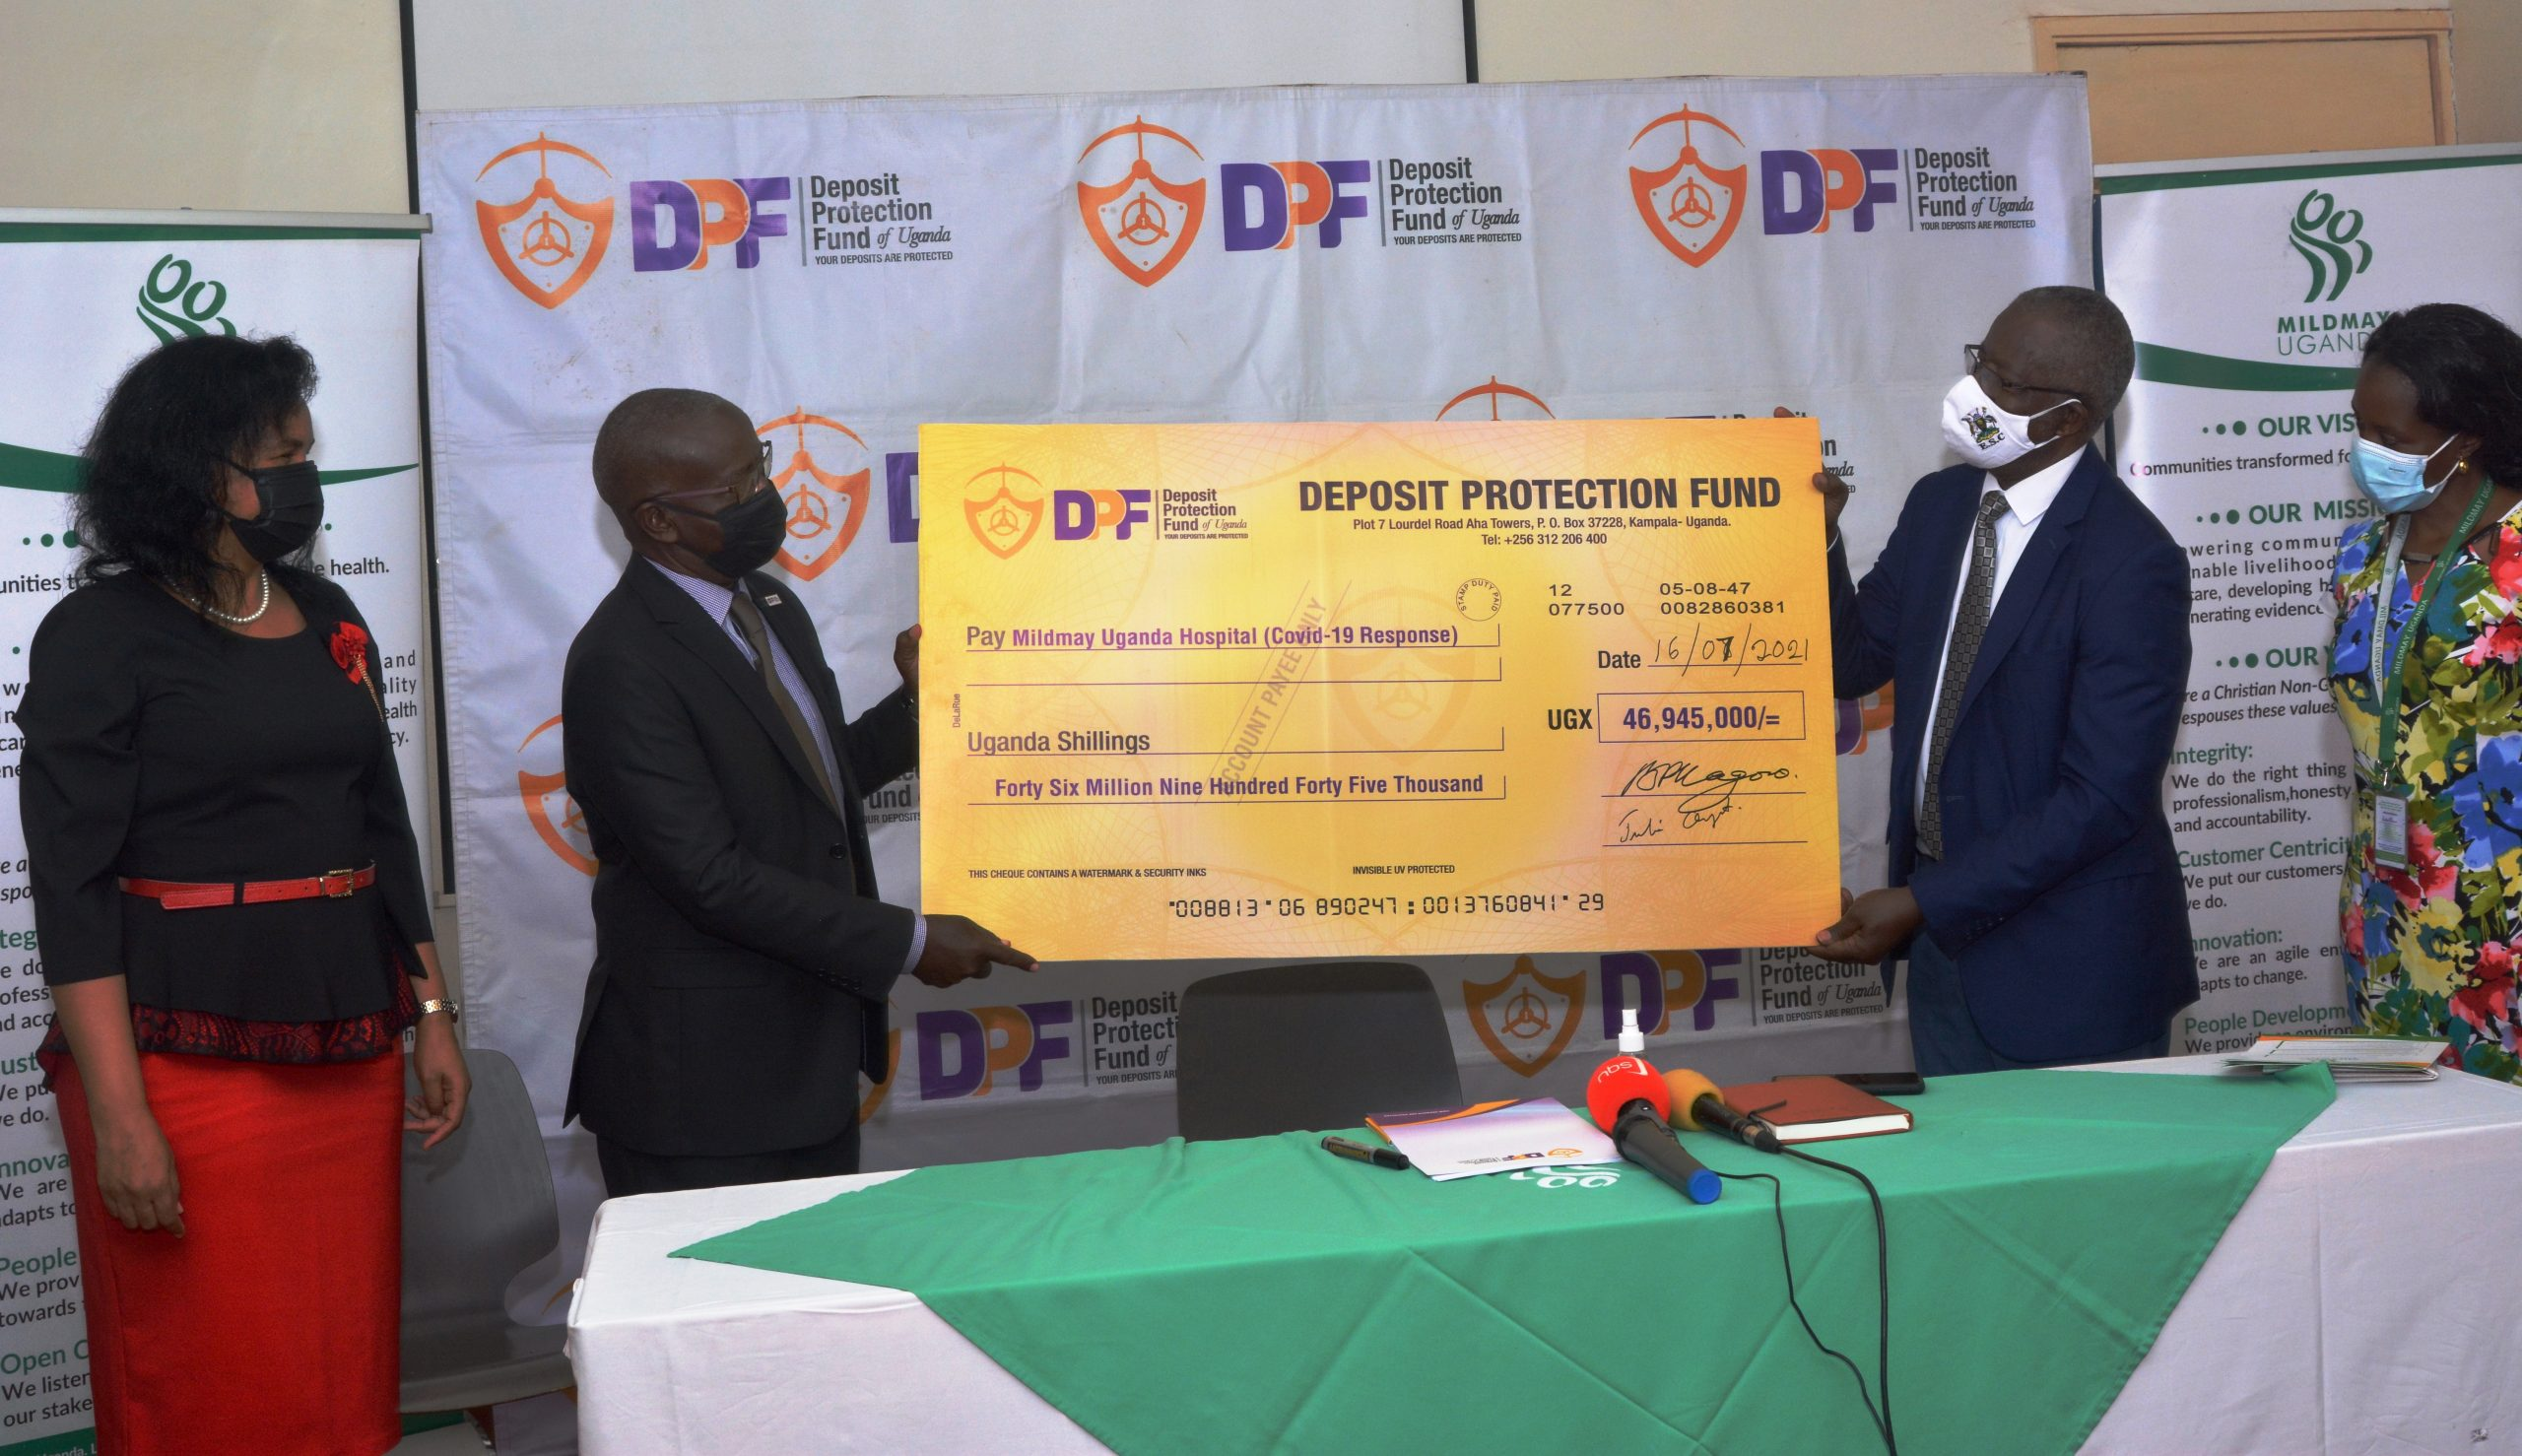 Deposit Protection Fund (DPF) Makes Donation Worth UGX 46,945,000 To Mildmay Uganda To Support Their Covid-19 Response